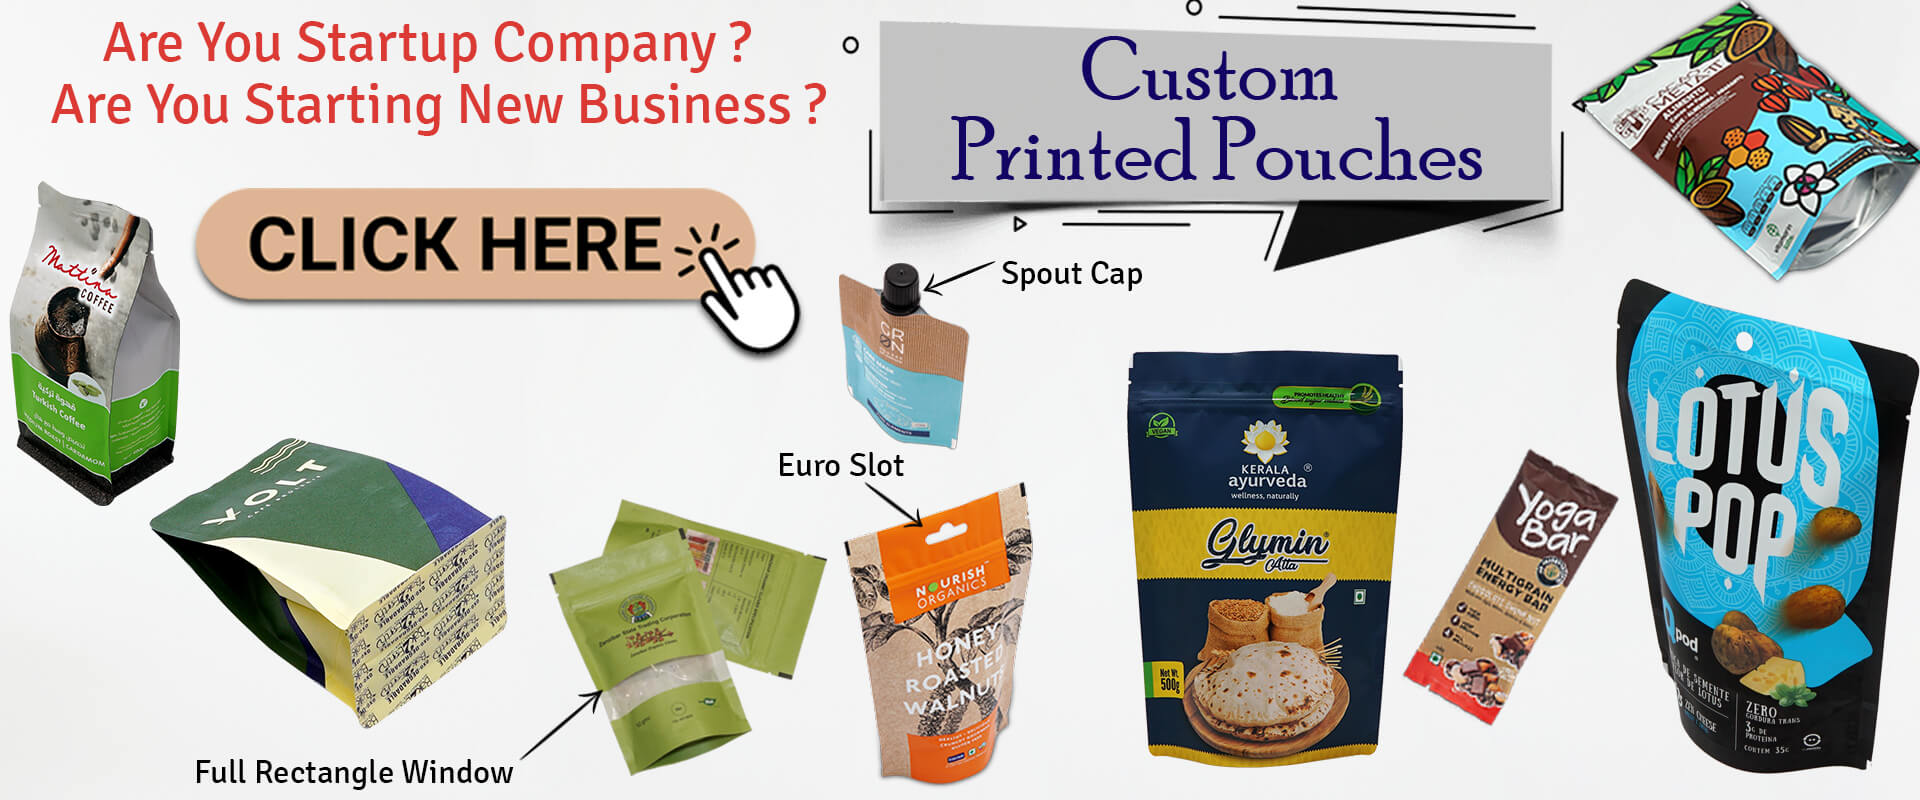 Custom-Printed-Pouches